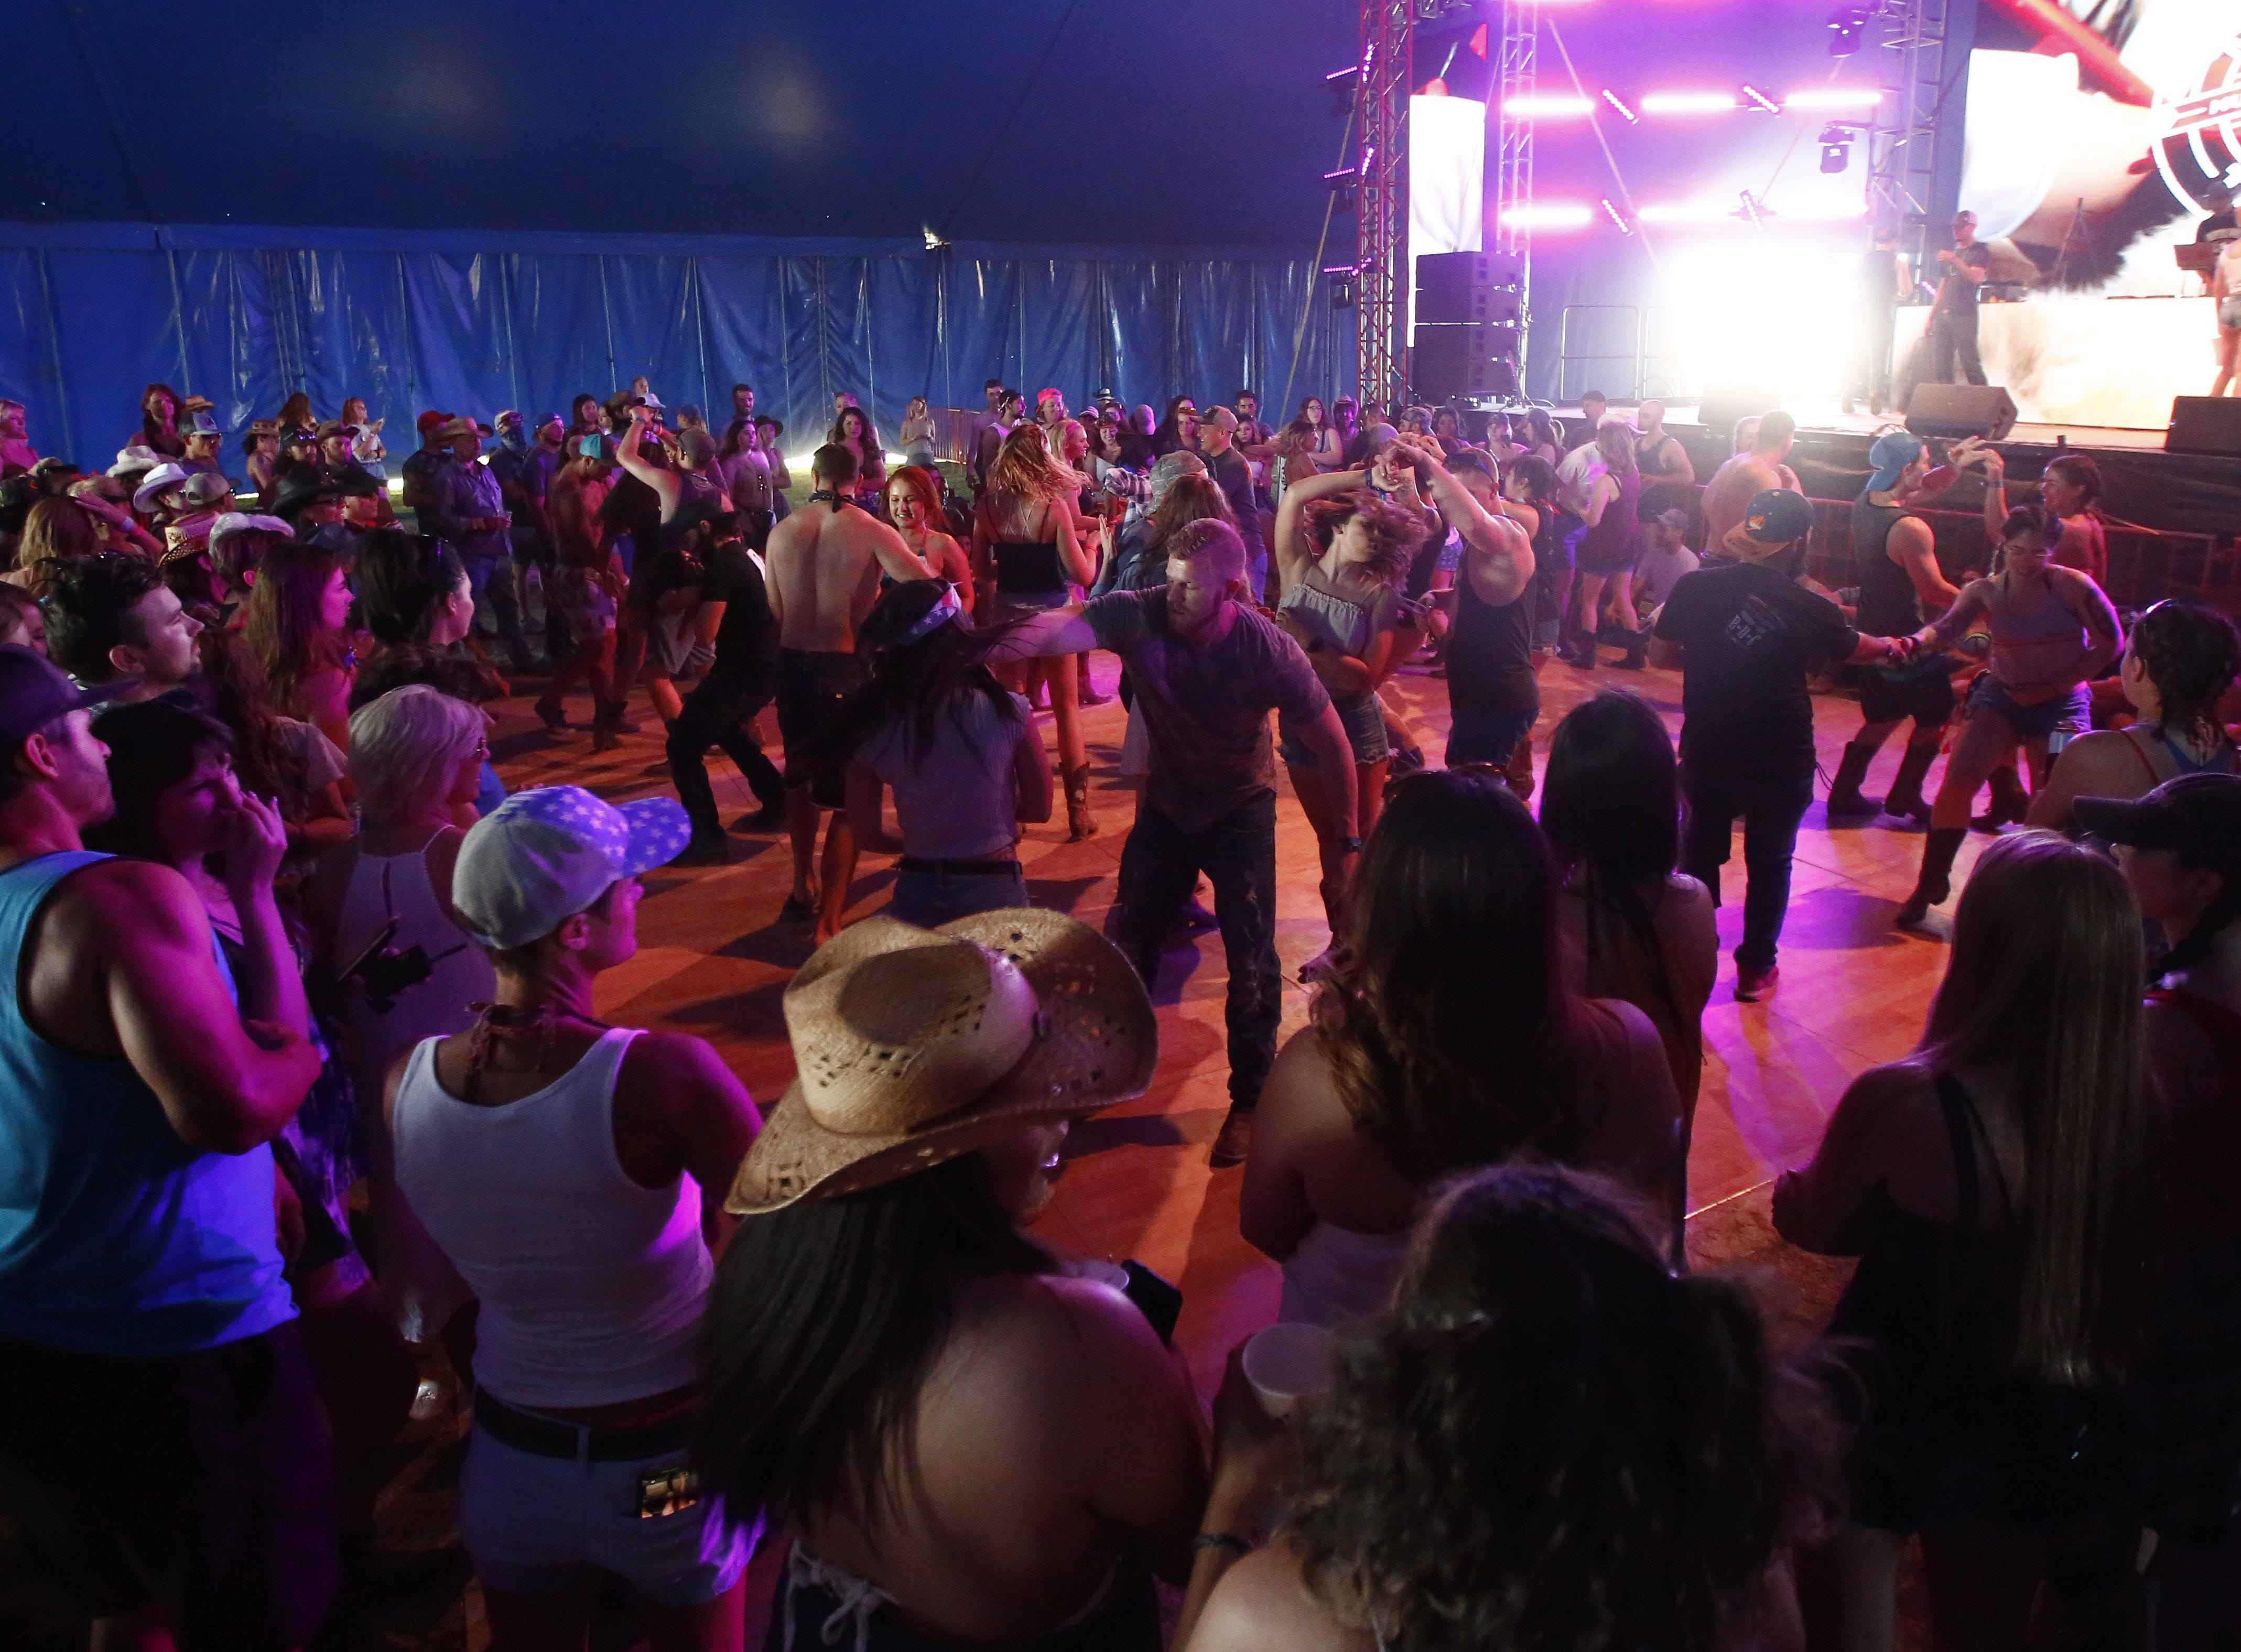 Contestants dance in an open time between rounds of Dancing with the Thunder competition inside the Electric Thunder tent during Country Thunder in Florence, Ariz. on Saturday, April 13, 2019.